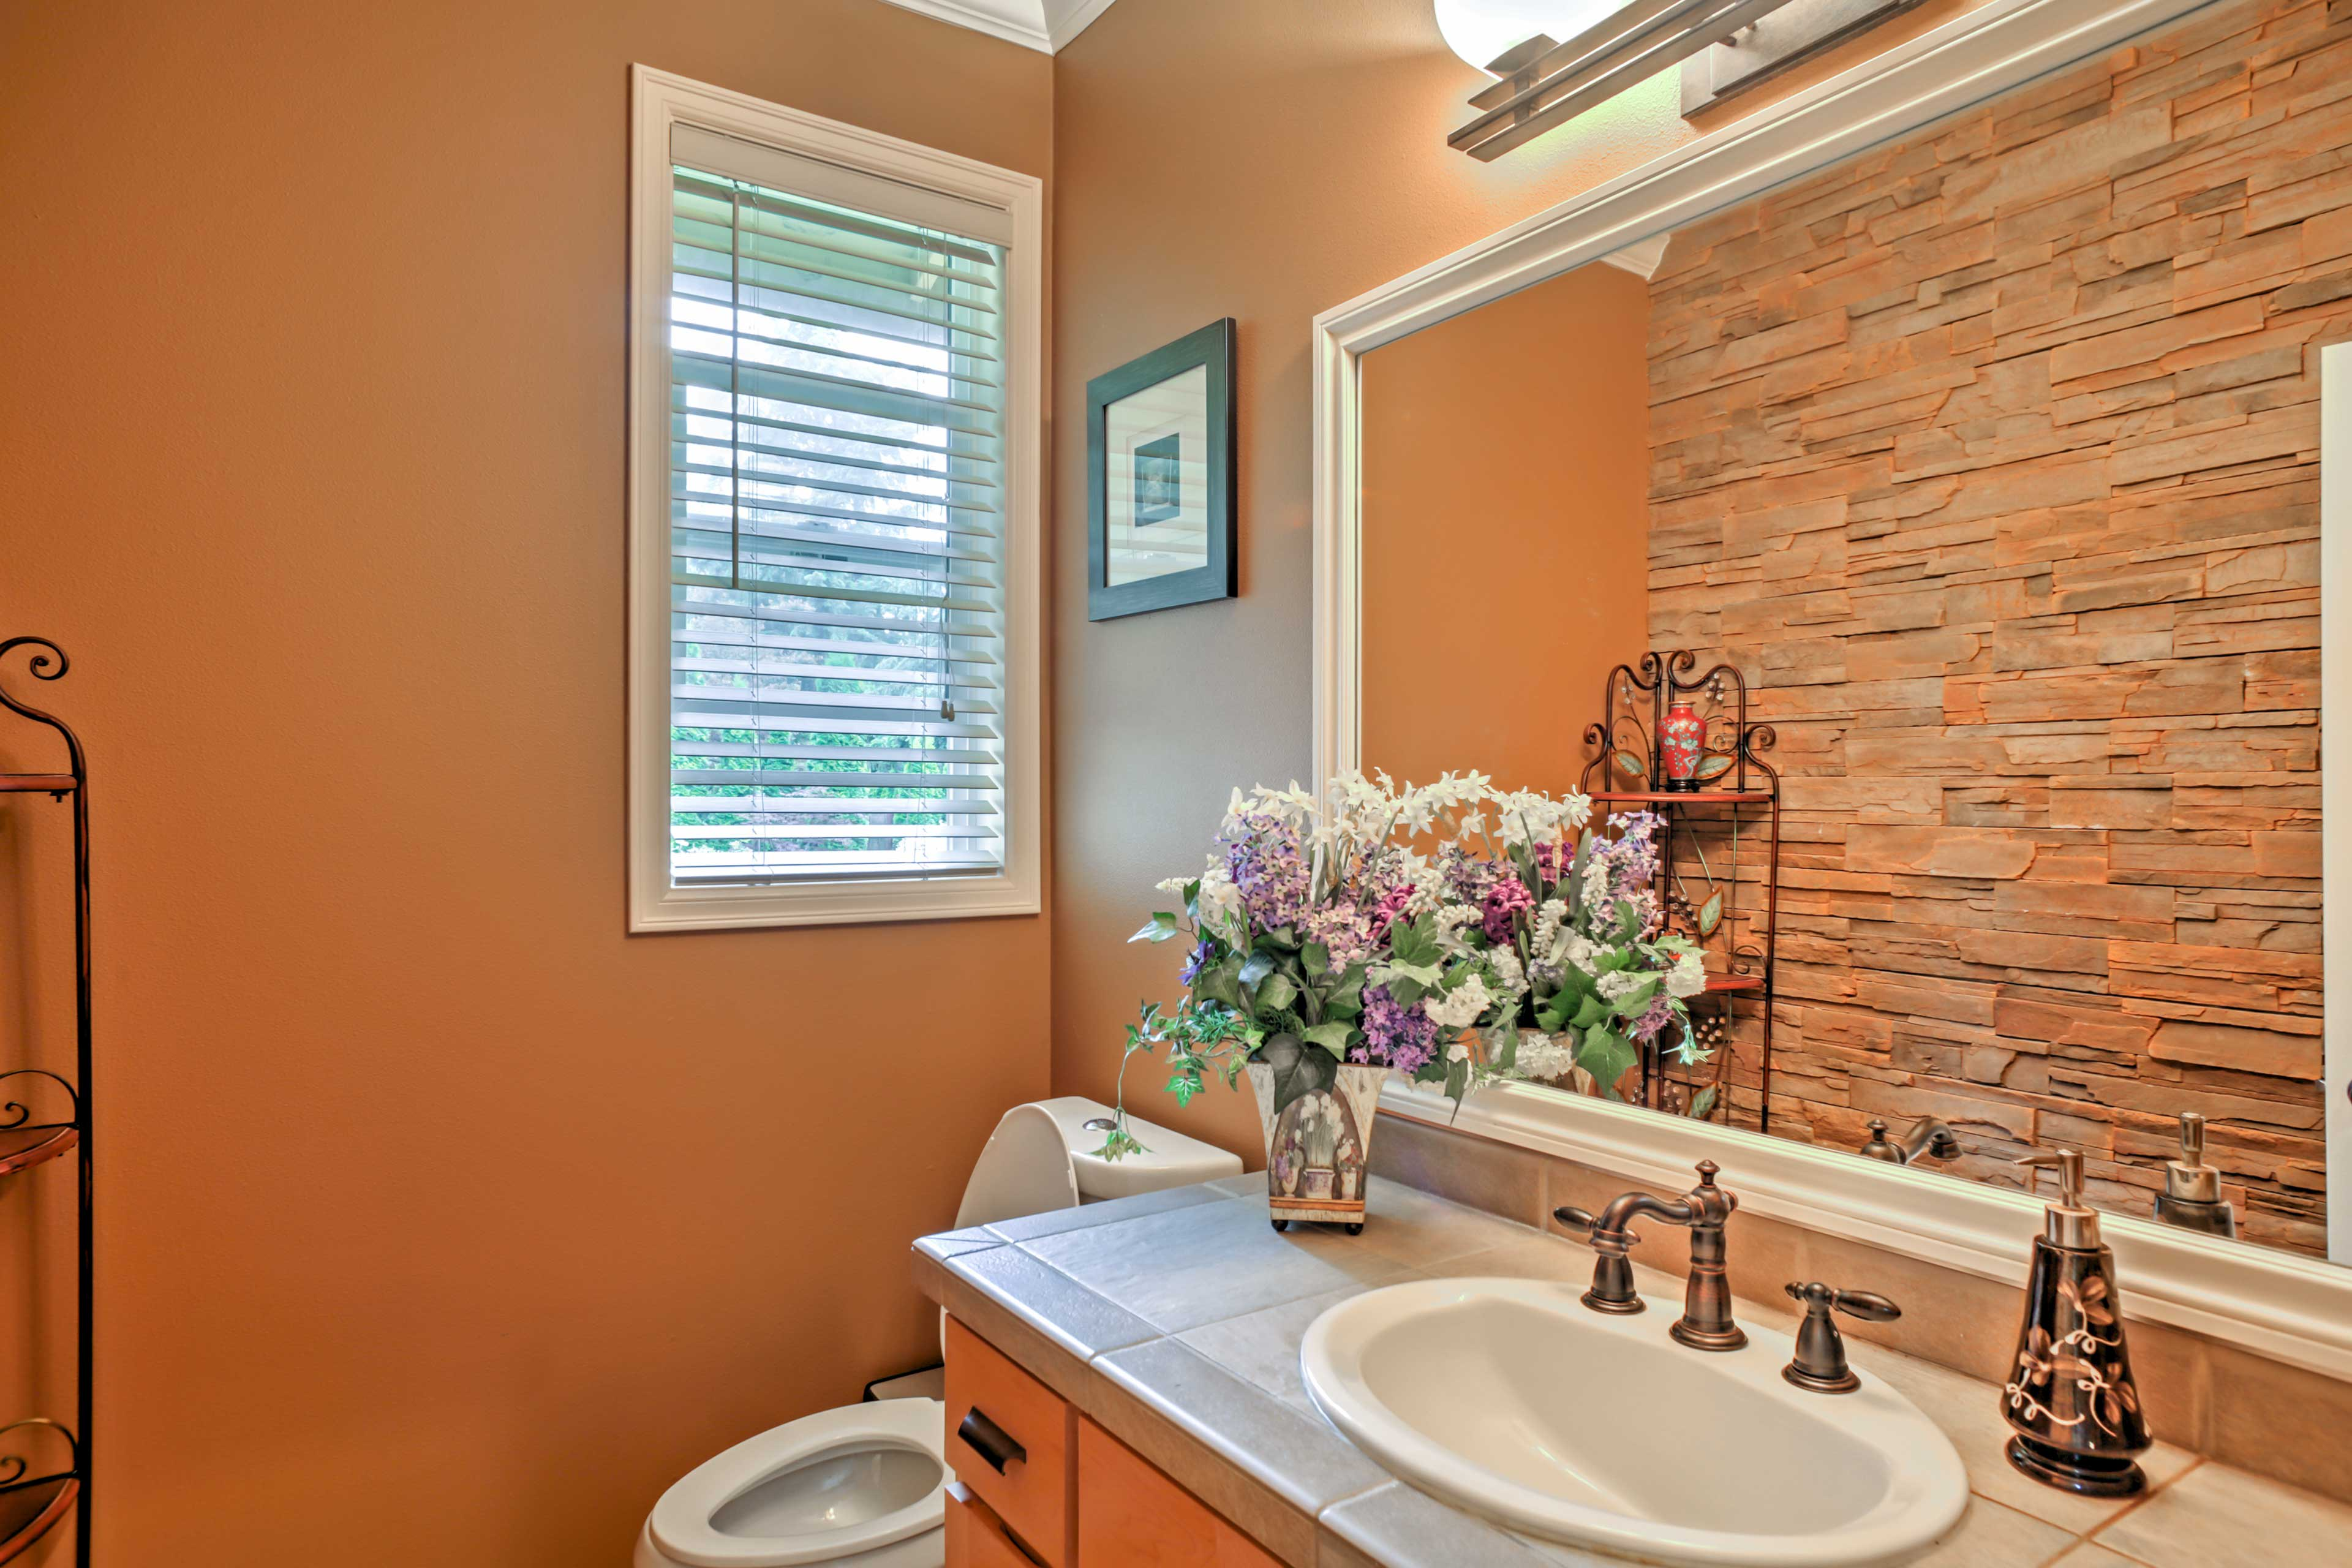 A lovely half bathroom can be found on the main level.